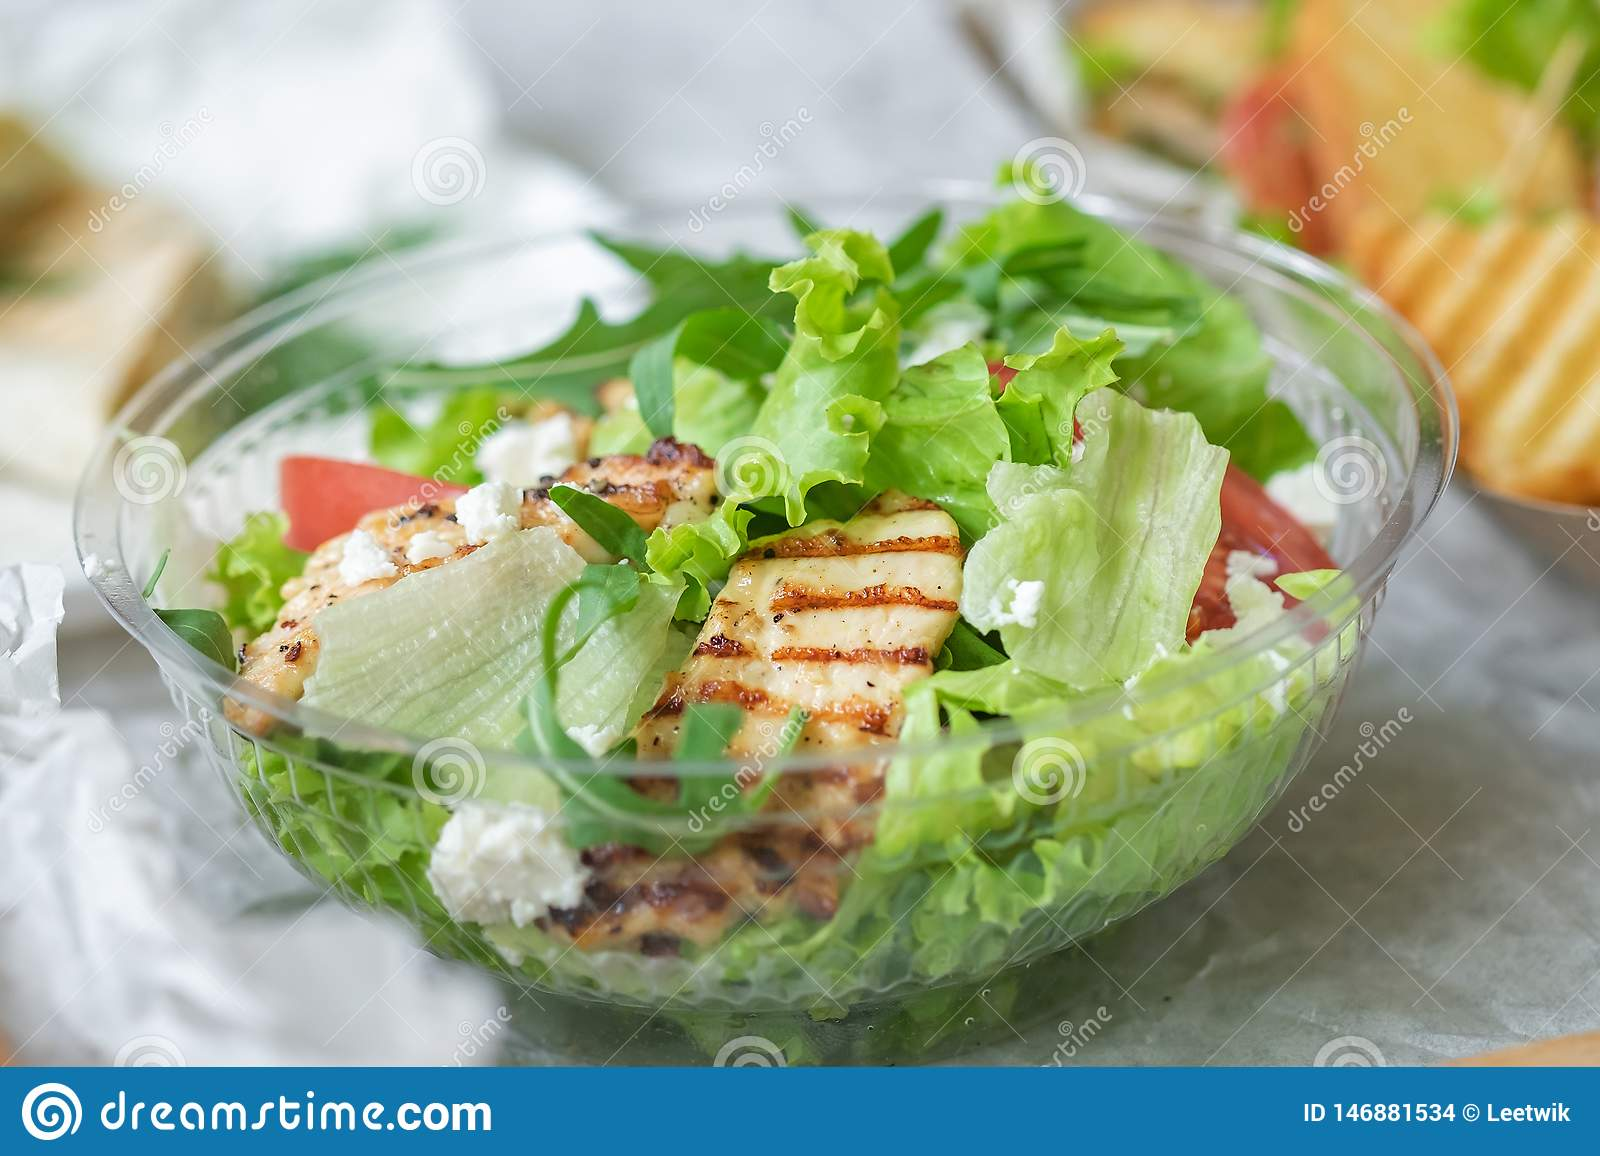 Tasty appetizing fresh salad with chicken, tomatoes, cucumbers and cheese parmesan in bowl. Close-up